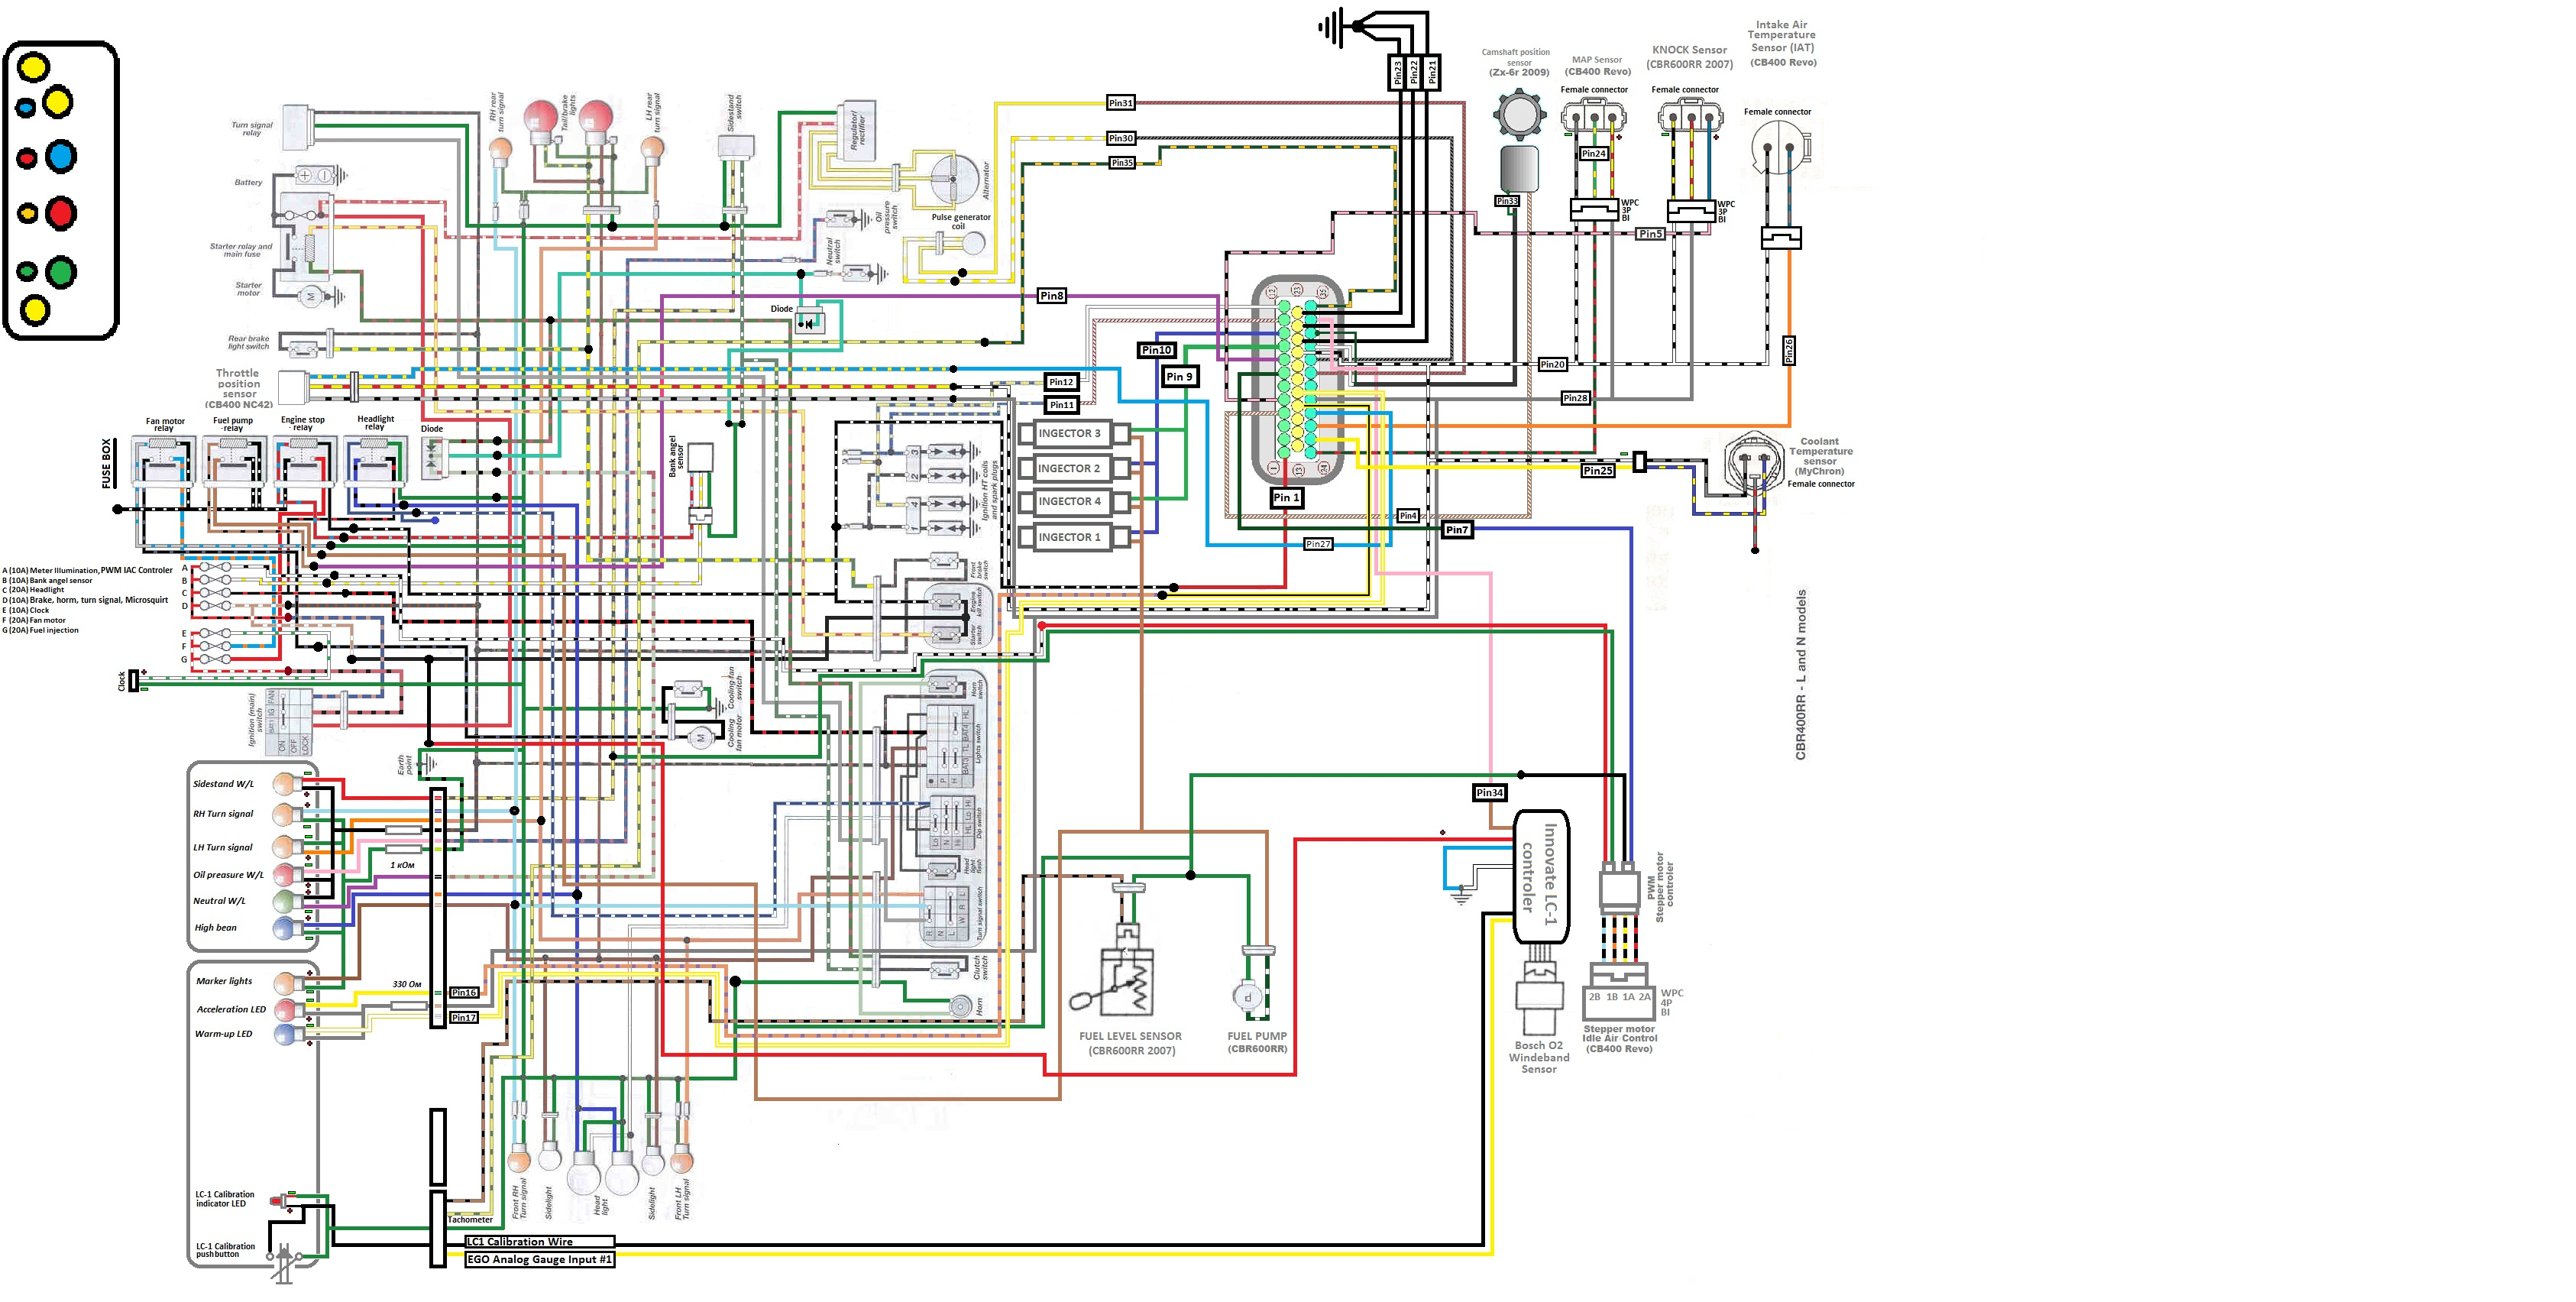 CBR400RR_NC29_Microsquirt_wiring_loom motorcycle wiring diagrams honda ca77 wiring diagram at alyssarenee.co